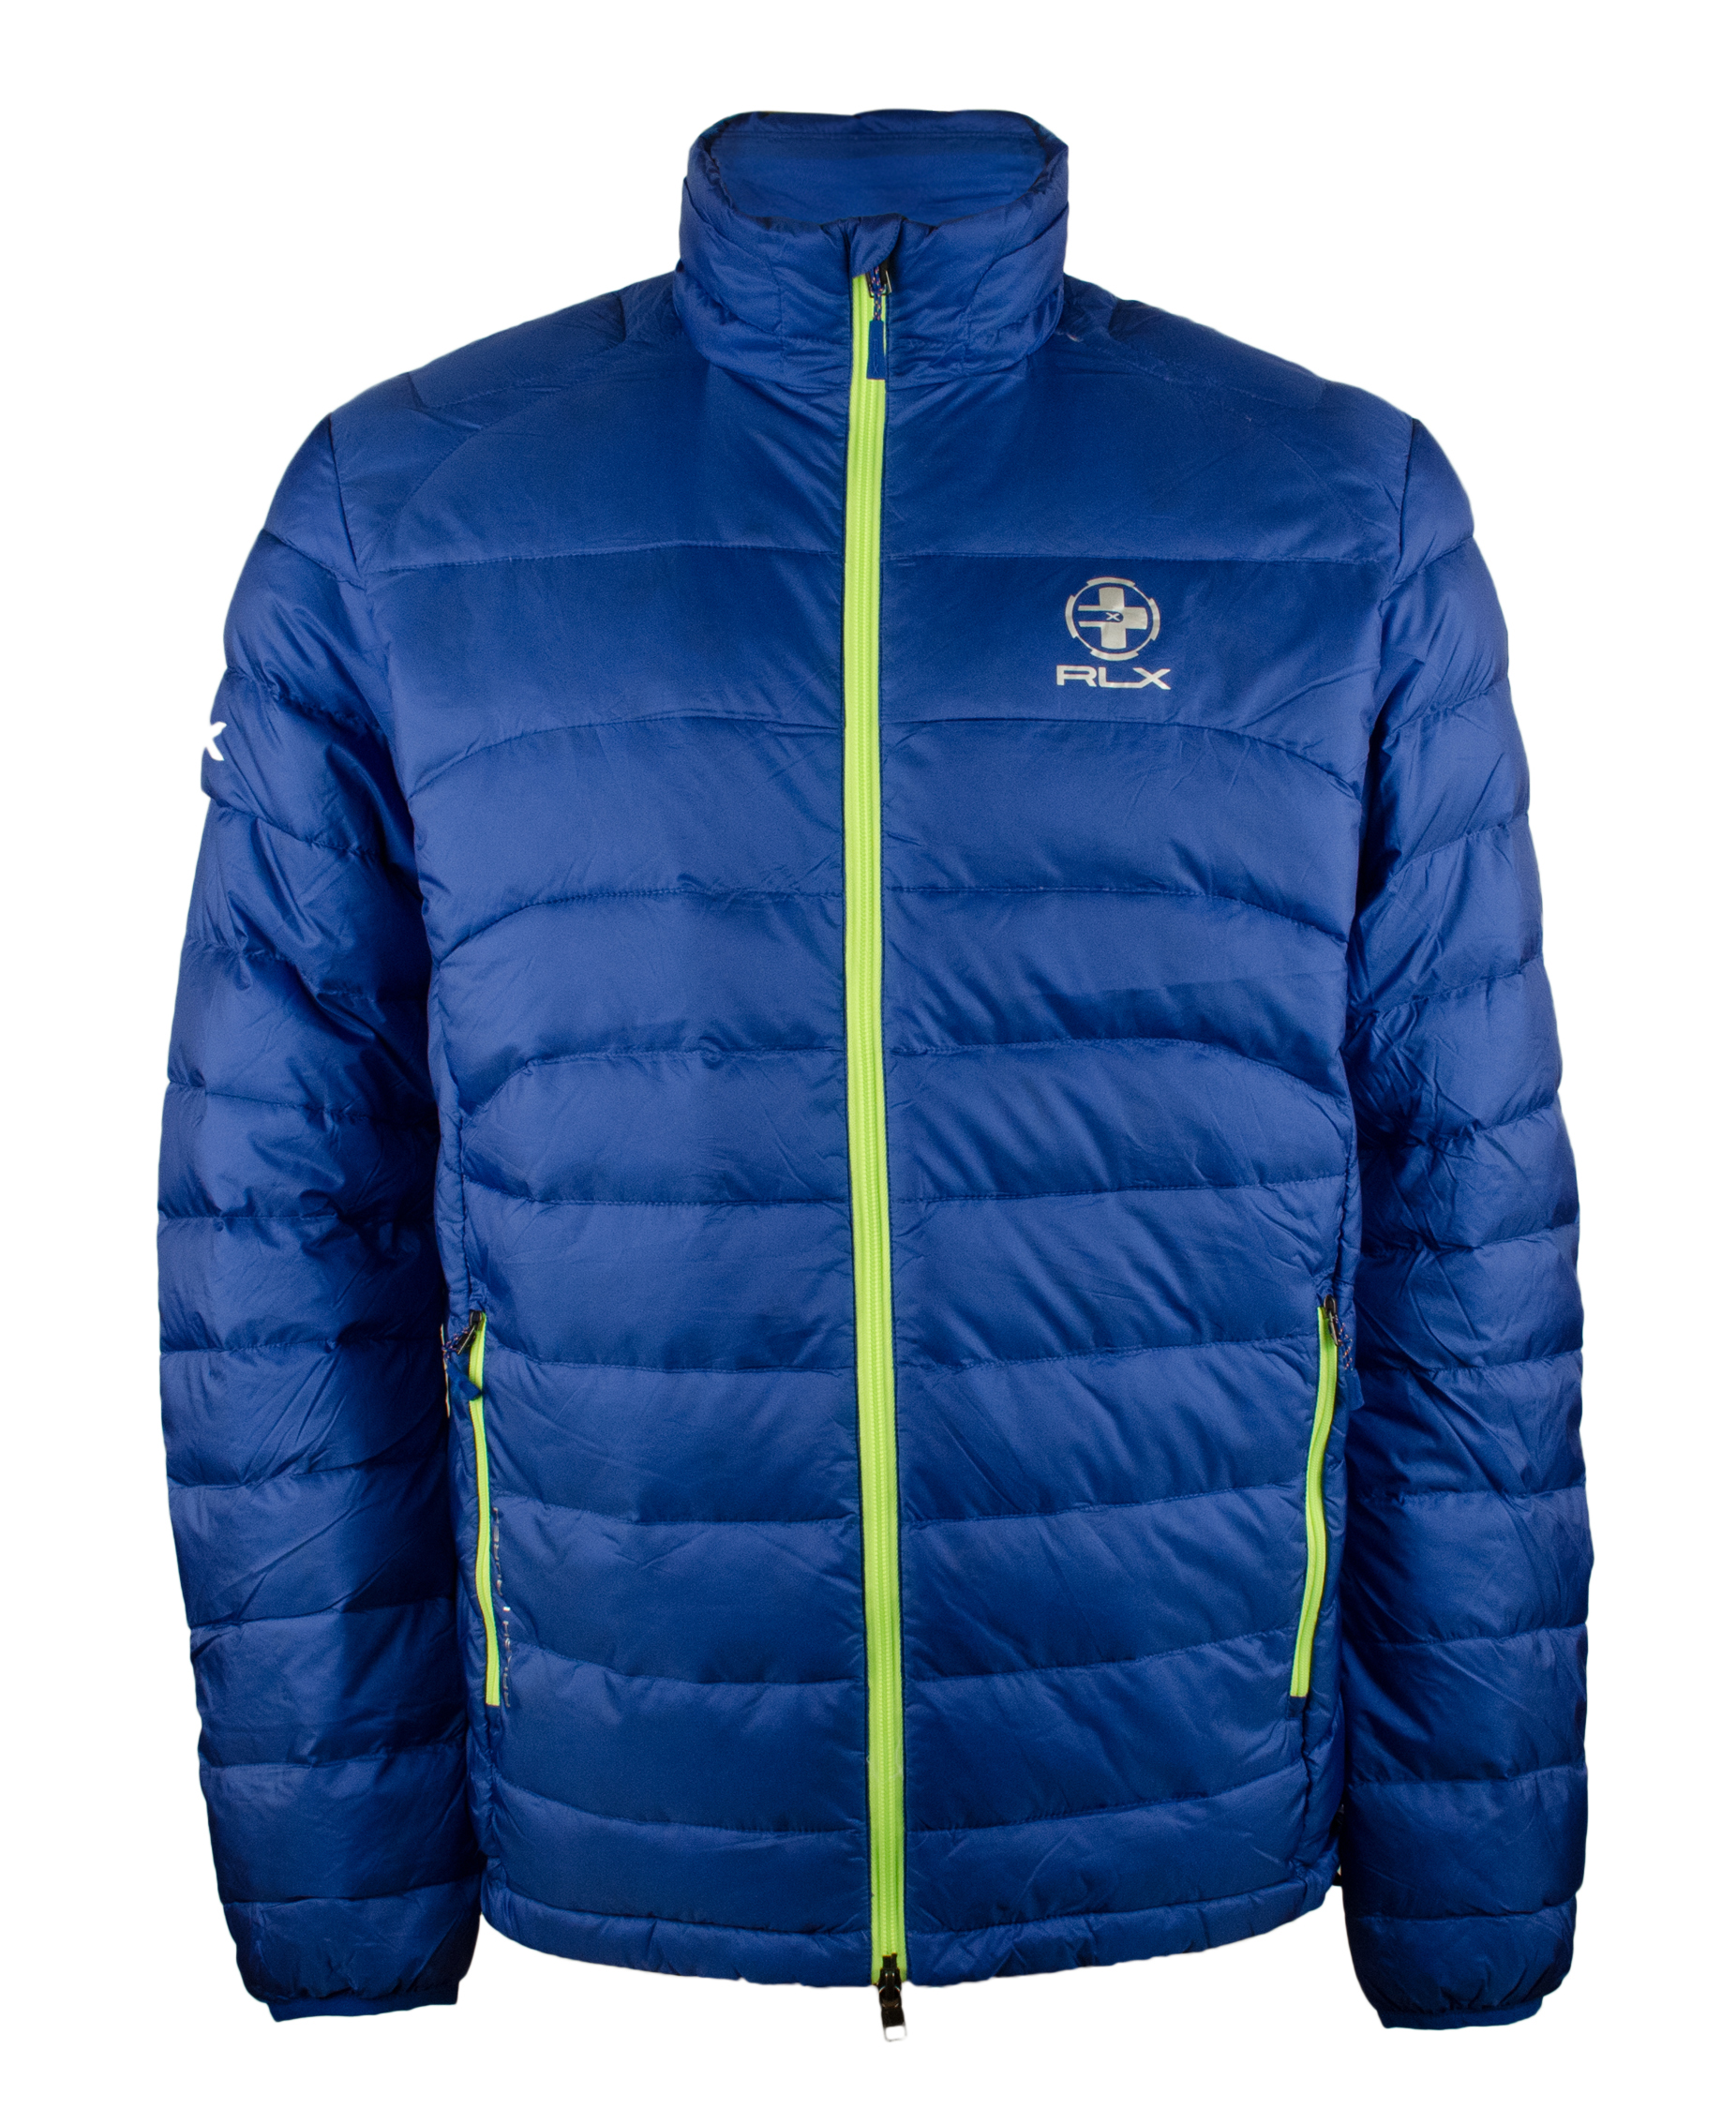 polo quilted dr cotton blue product jacket lightweight quilt normal ralph canadian lauren combat navy military mens